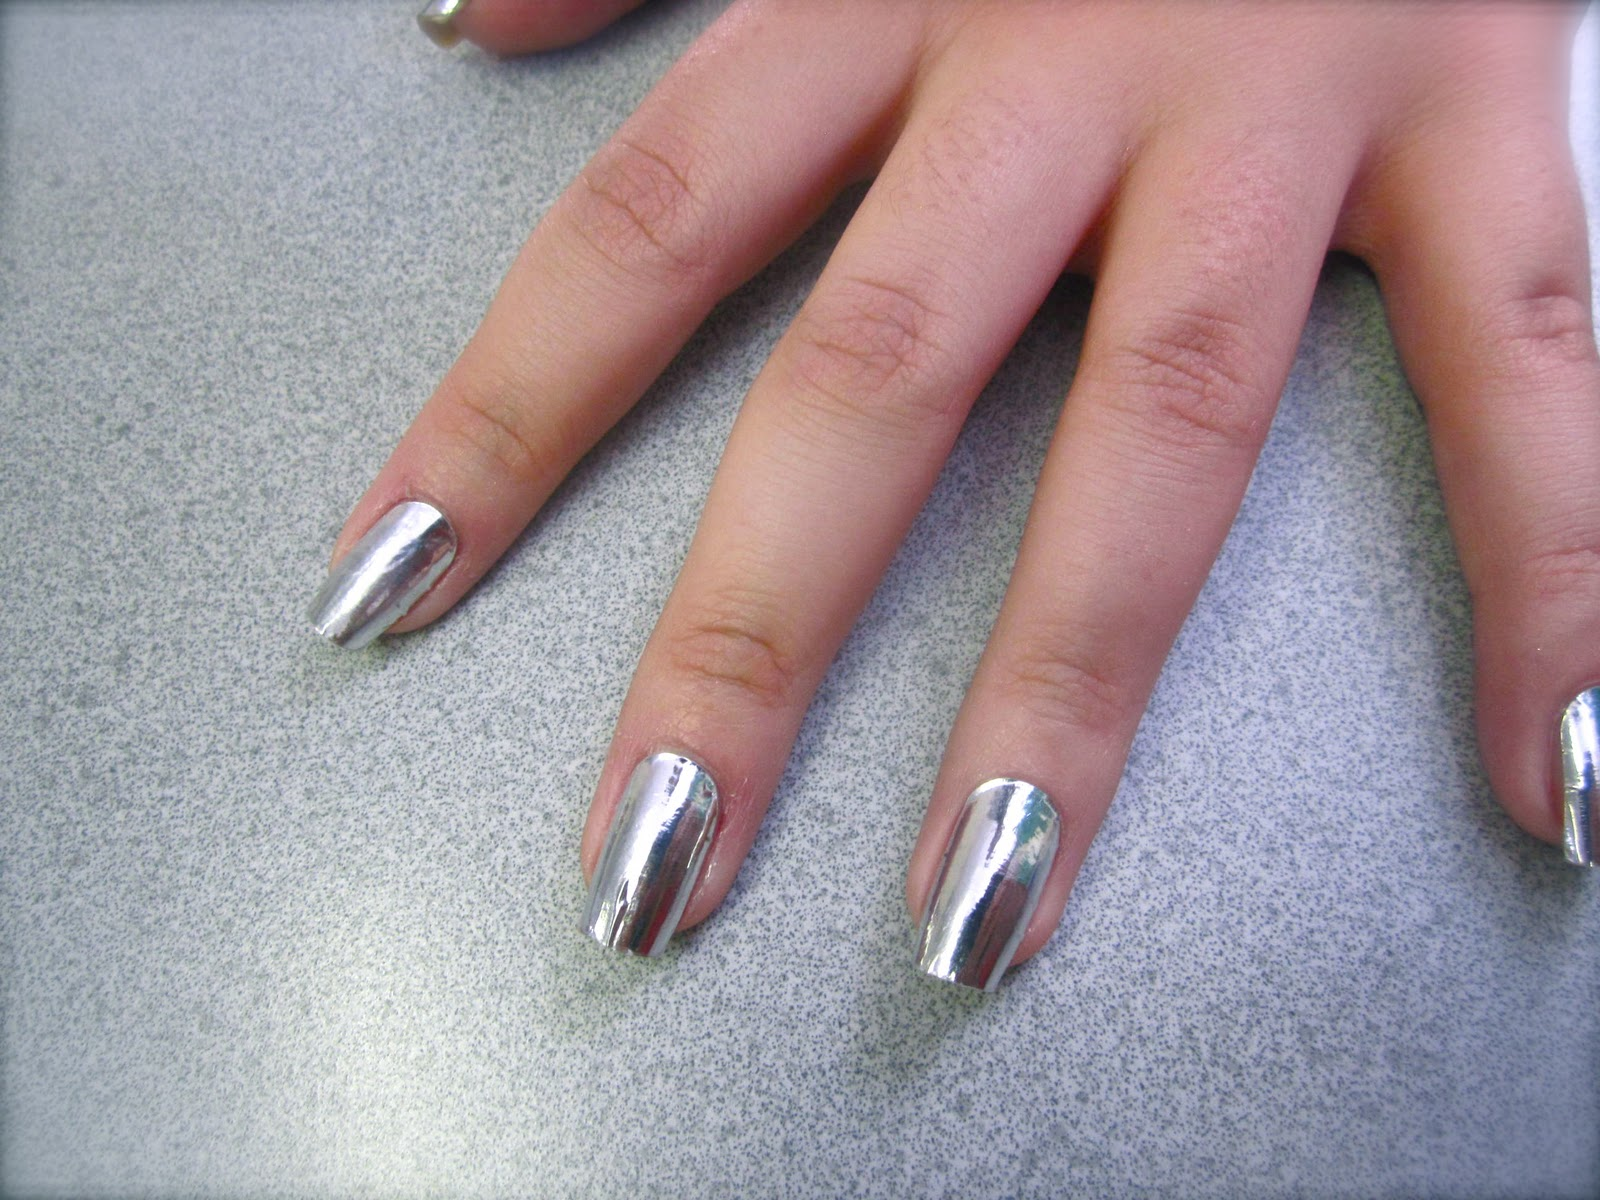 Minx nails ~ Yolanda's Blog~ UK Natural Afro Hair Blog and Beauty Blog